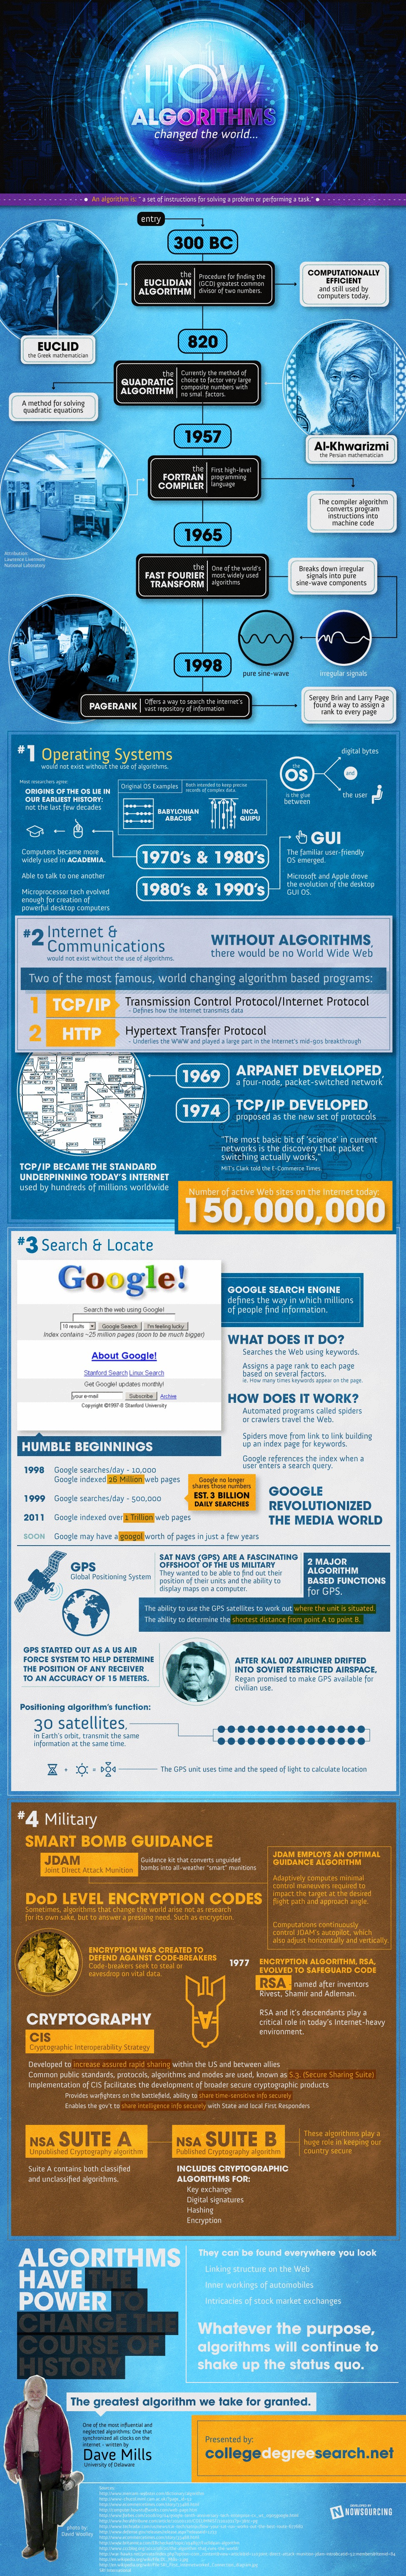 Where Would We Be Without Algorithms? [Infographic] image algorithms